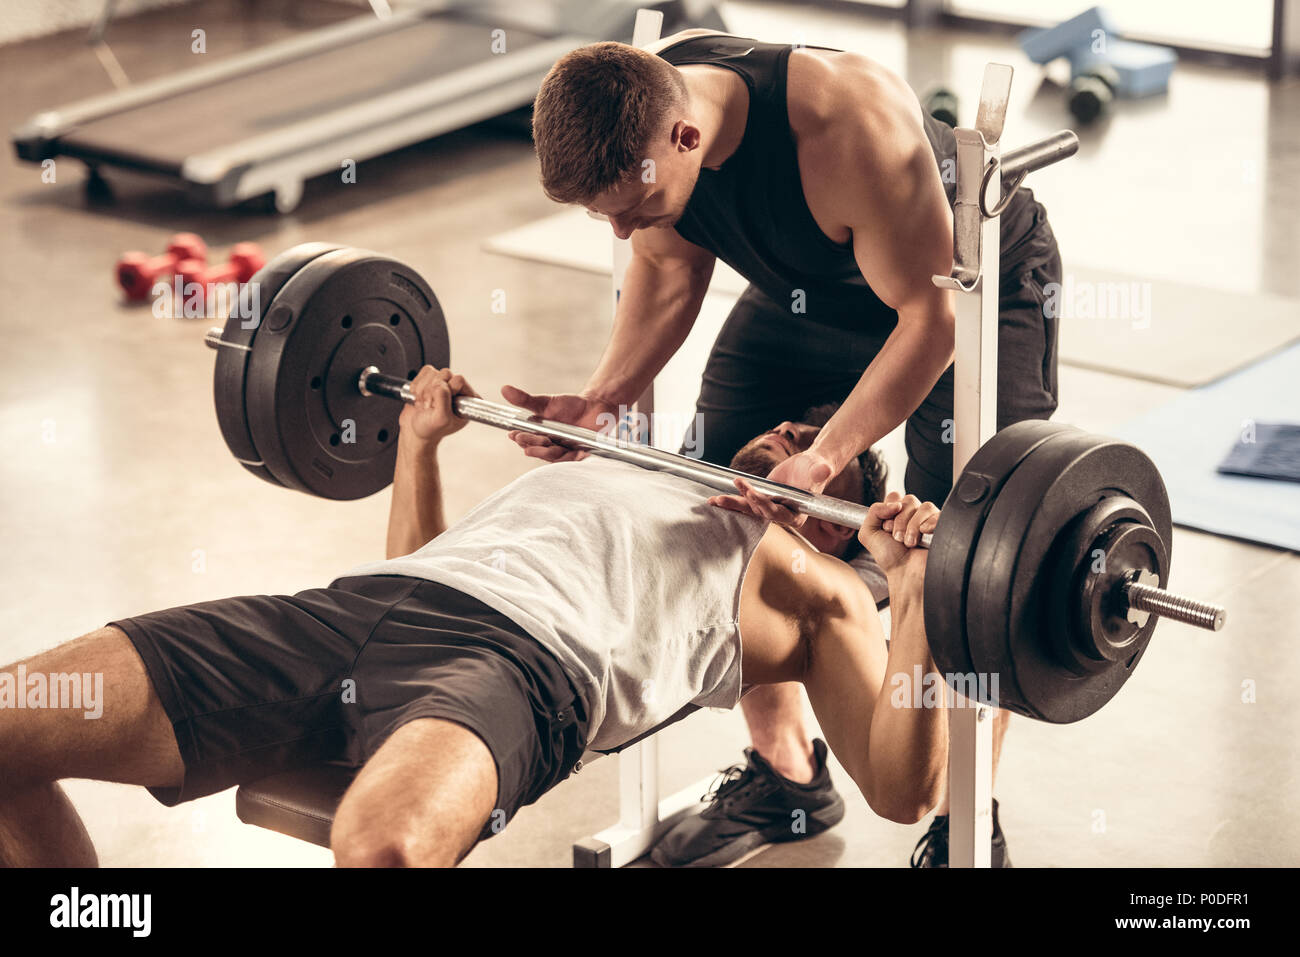 athletic trainer helping sportsman lifting barbell with heavy weight plates in gym - Stock Image